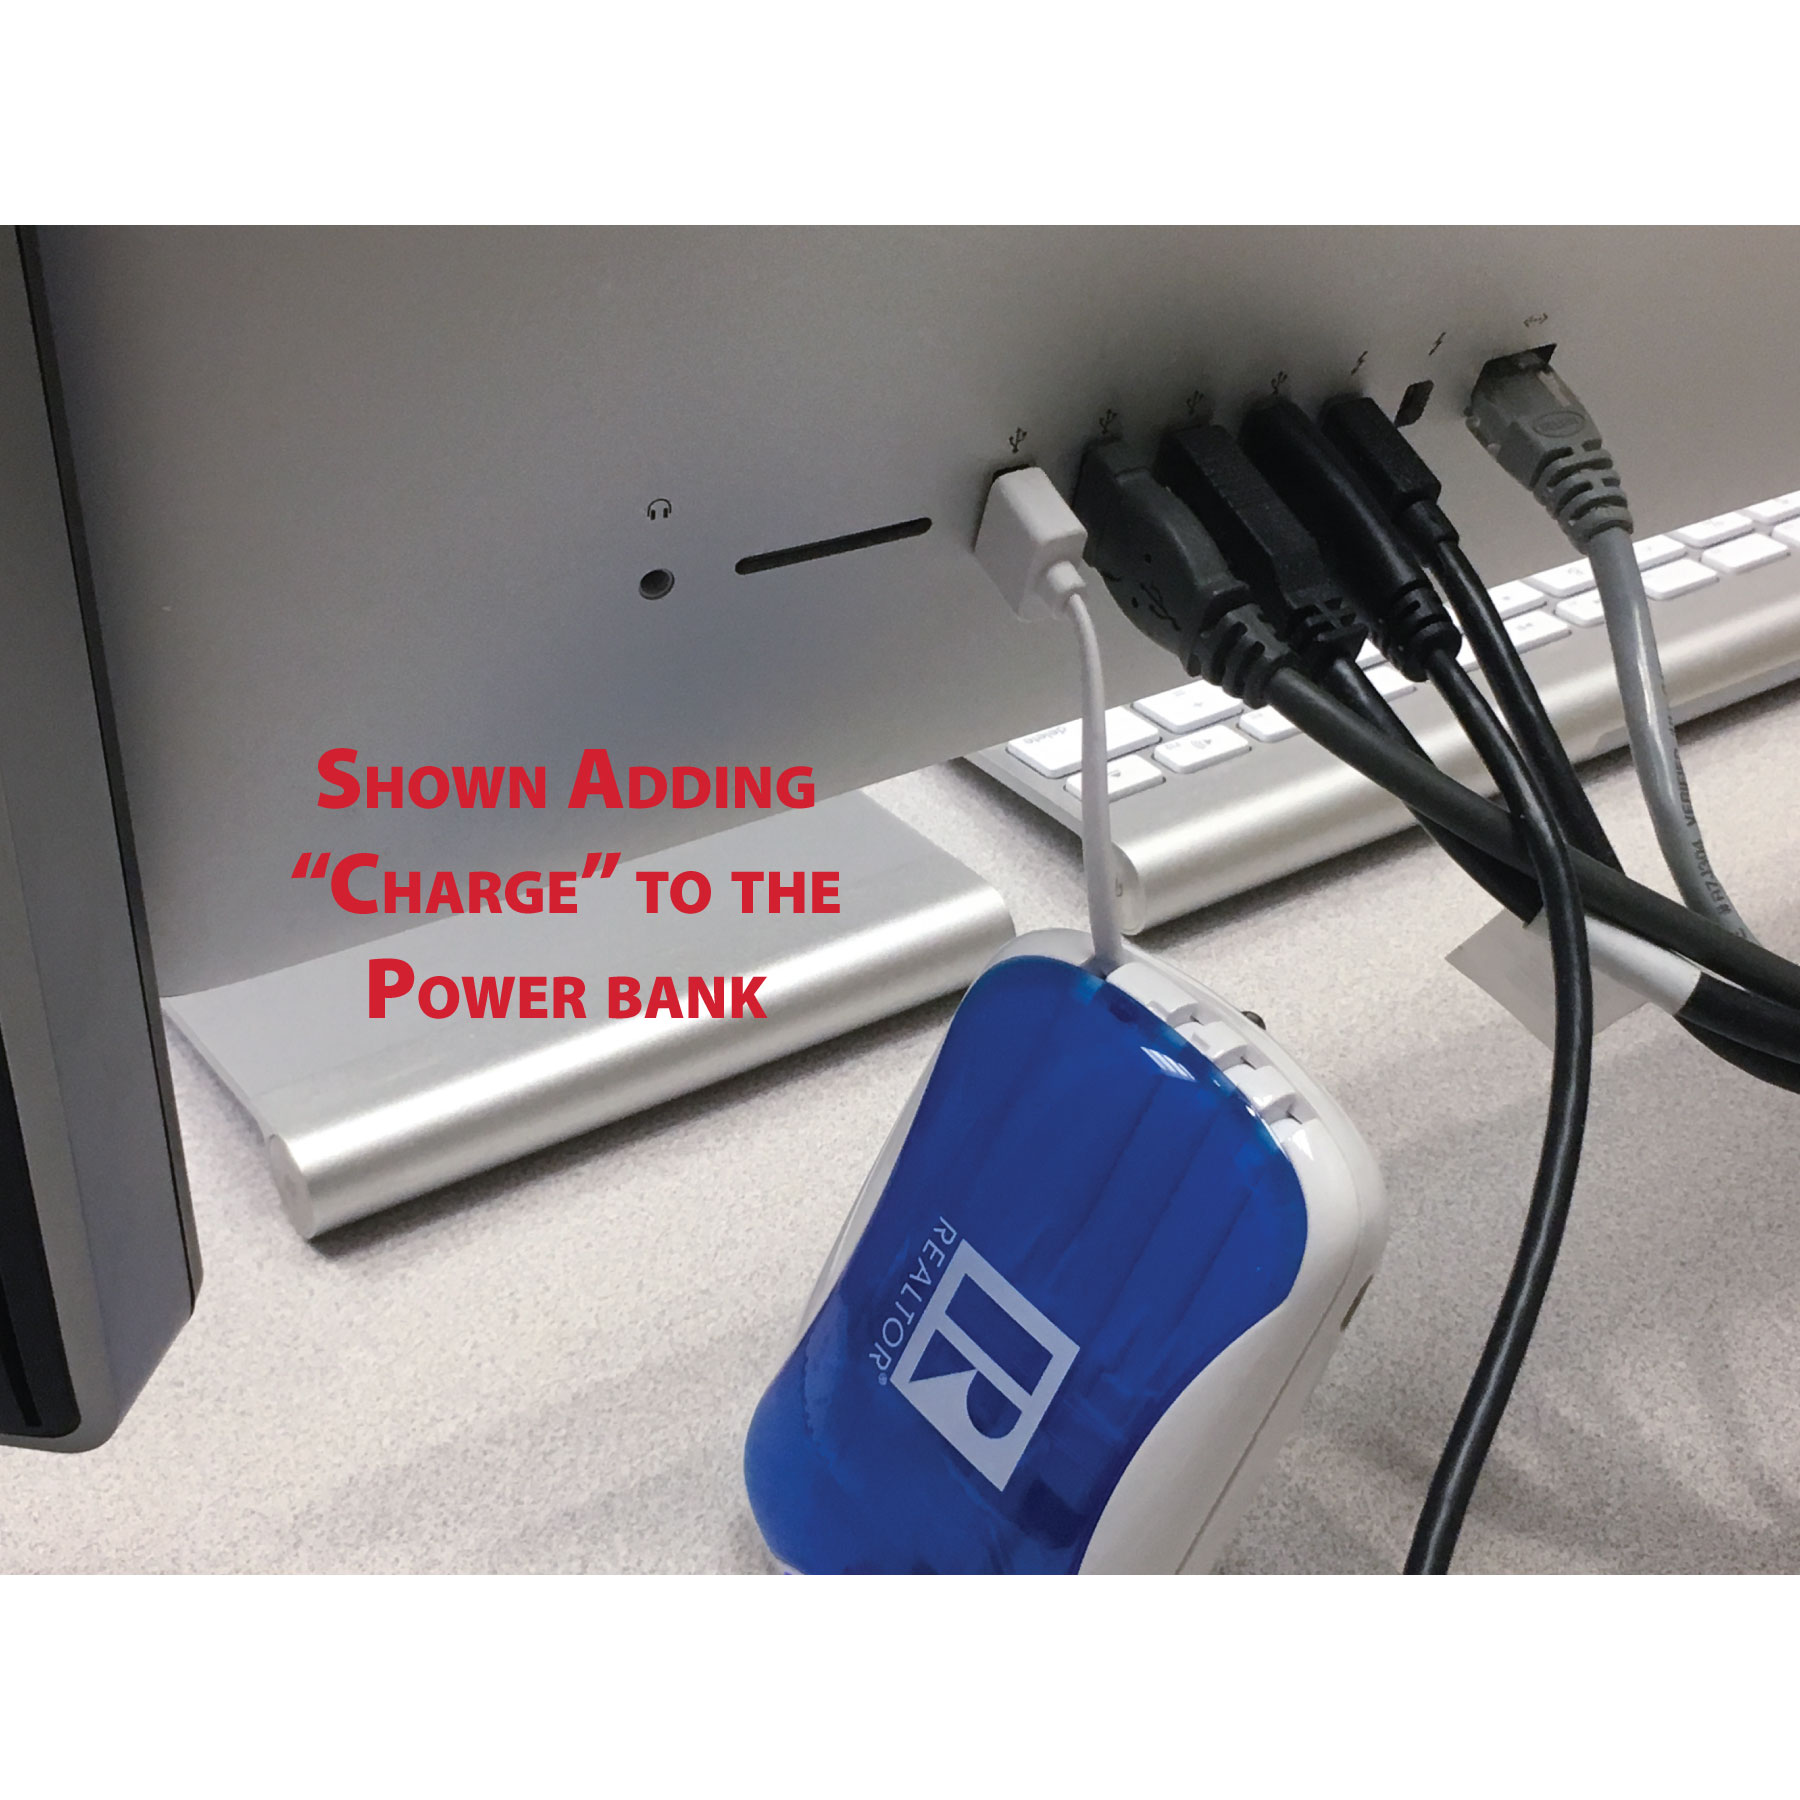 USB Power Bank with Built in Cords (4-in-1) - RTS4613N